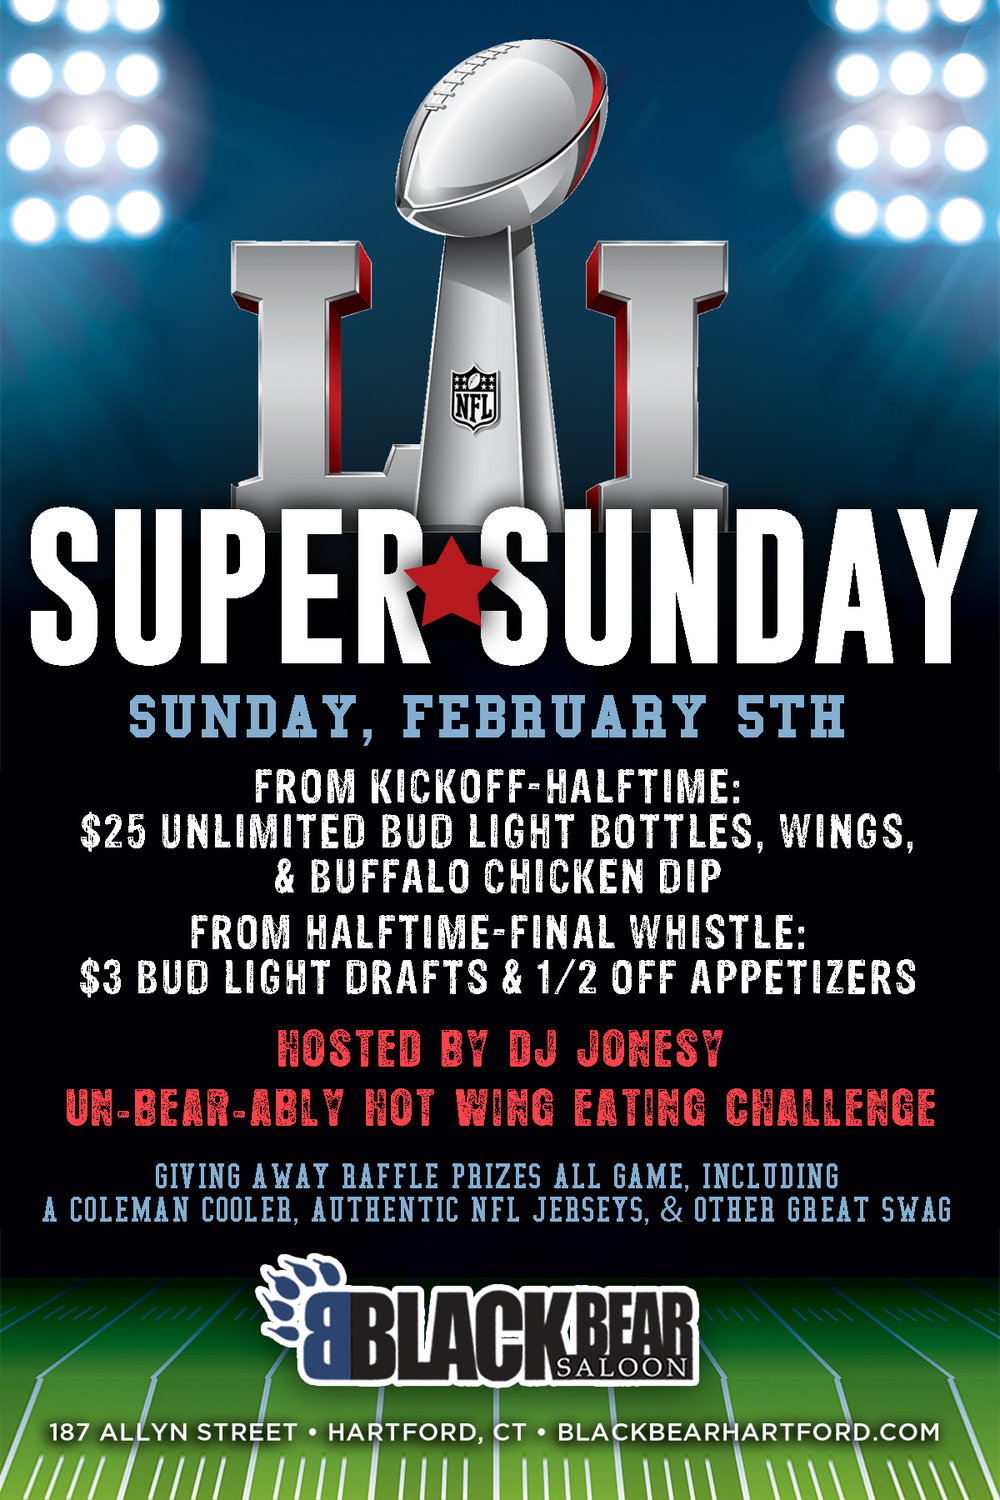 JOIN US AT BLACK BEAR SALOON FOR THE BIG GAME!  FOOD & DRINKS SPECIALS ALL GAME.  PROP BETS, GIVEAWAYS, HOT WING CHALLENGE, YOU NAME IT!  BE SURE TO WATCH THE GAME WITH US, ALL HOSTED BY YOURS TRULY